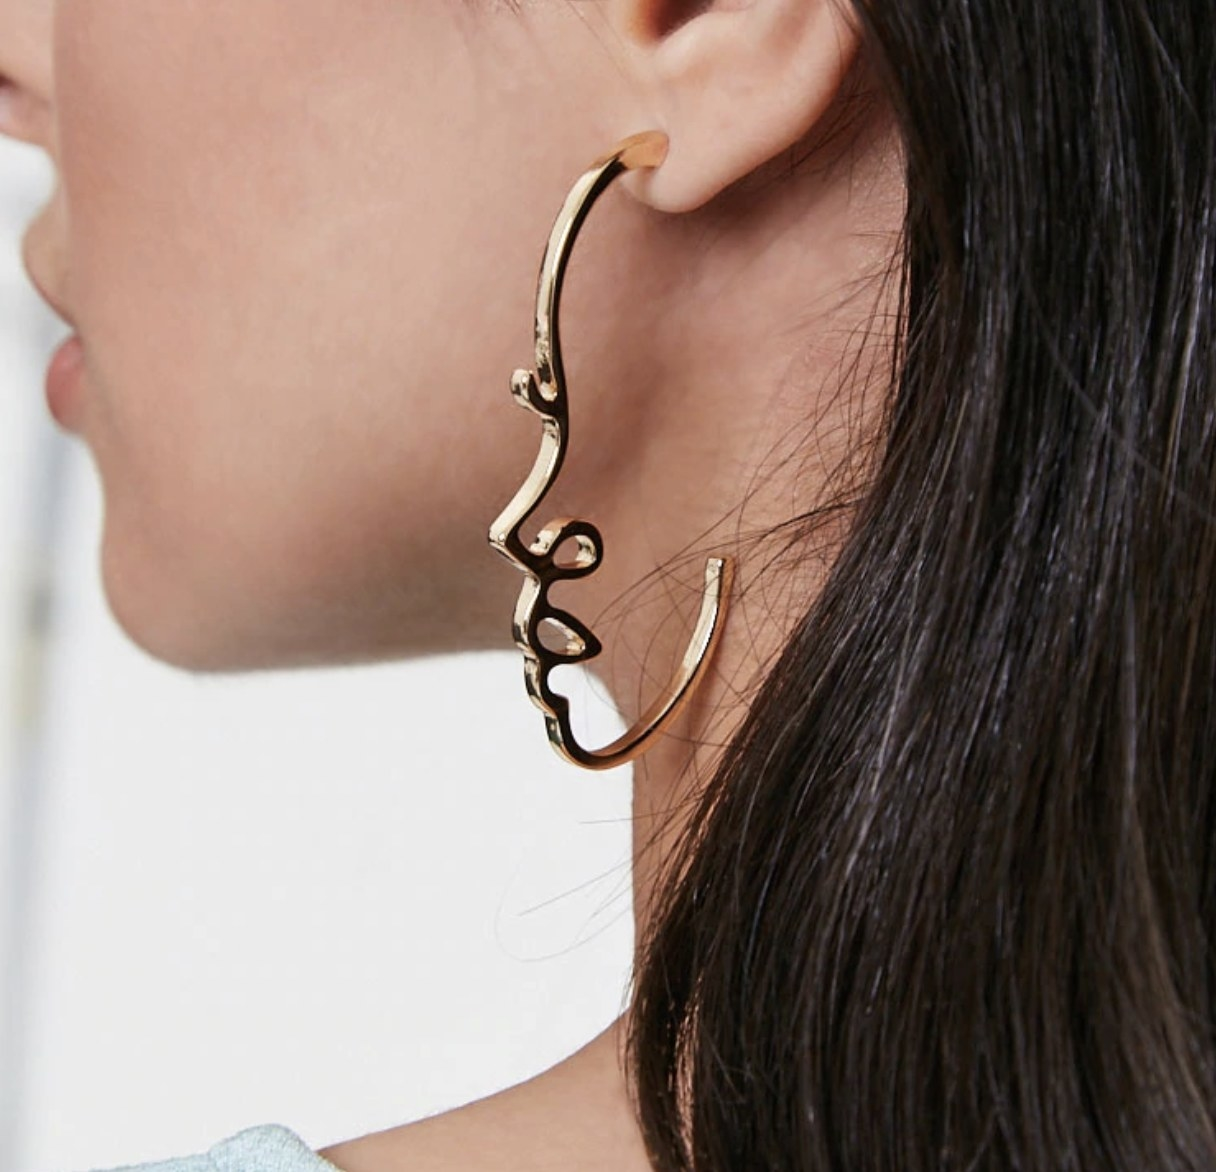 Model is wearing gold earrings shaped like a side profile of a face